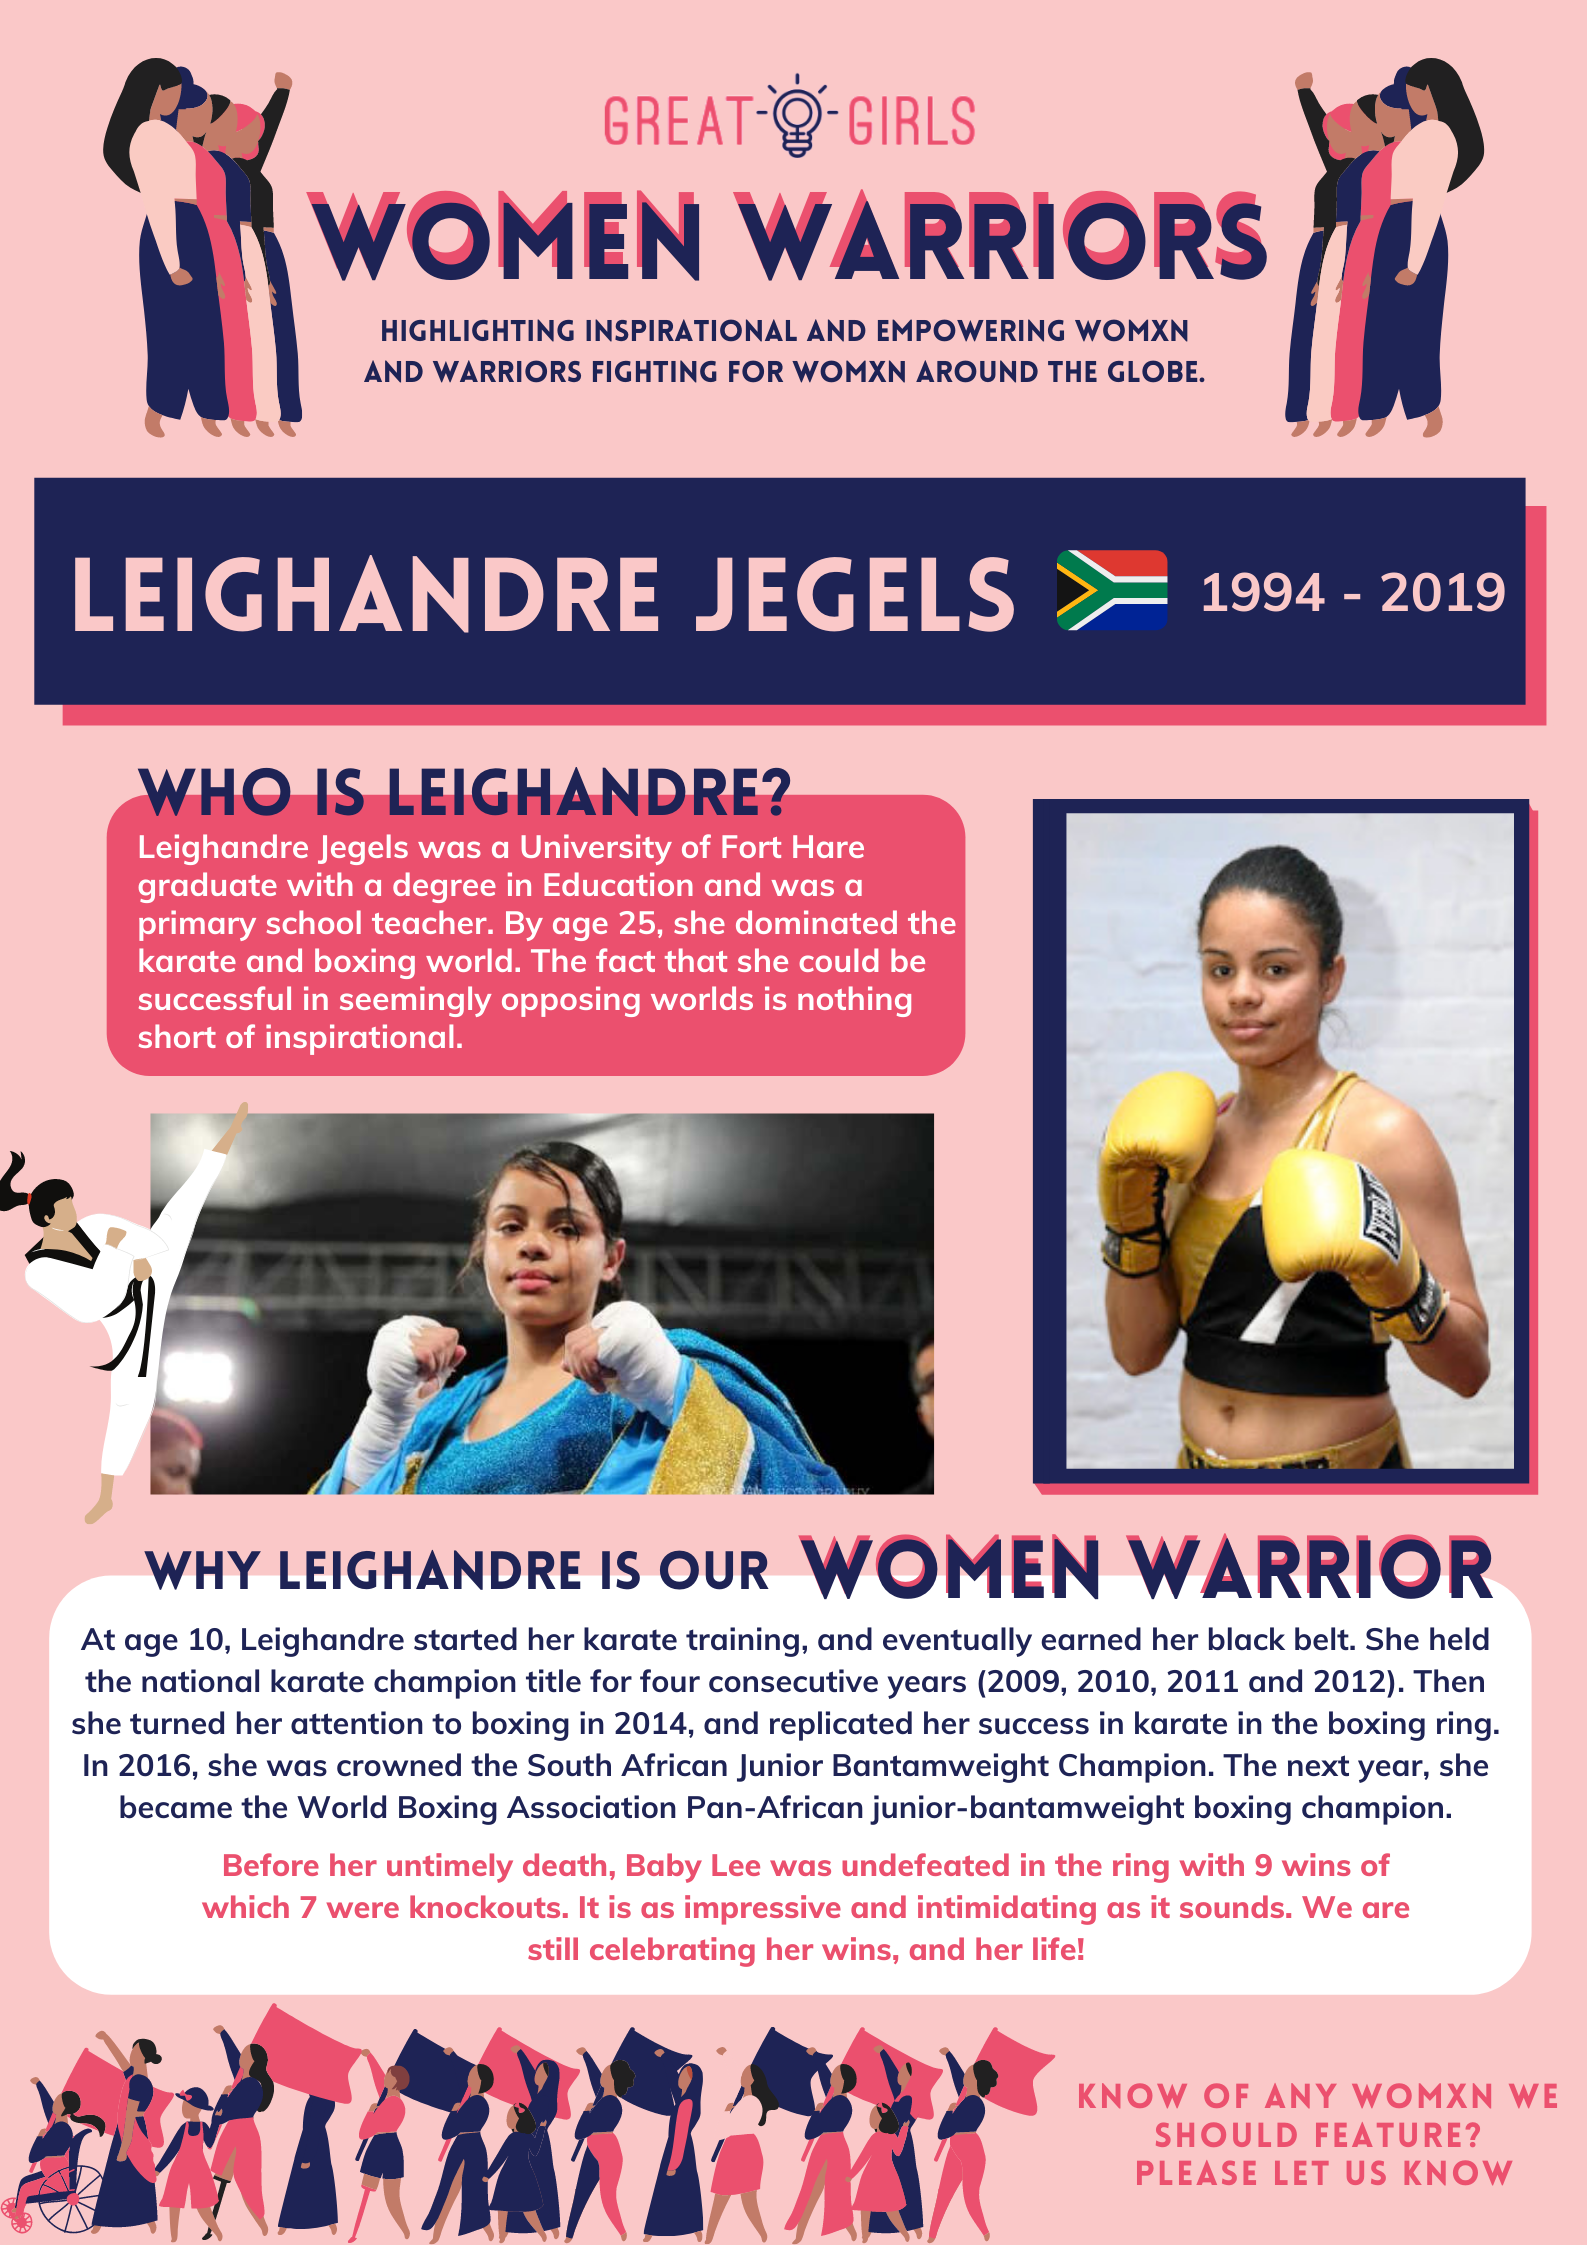 Women Warrior - Leighandre Jegels